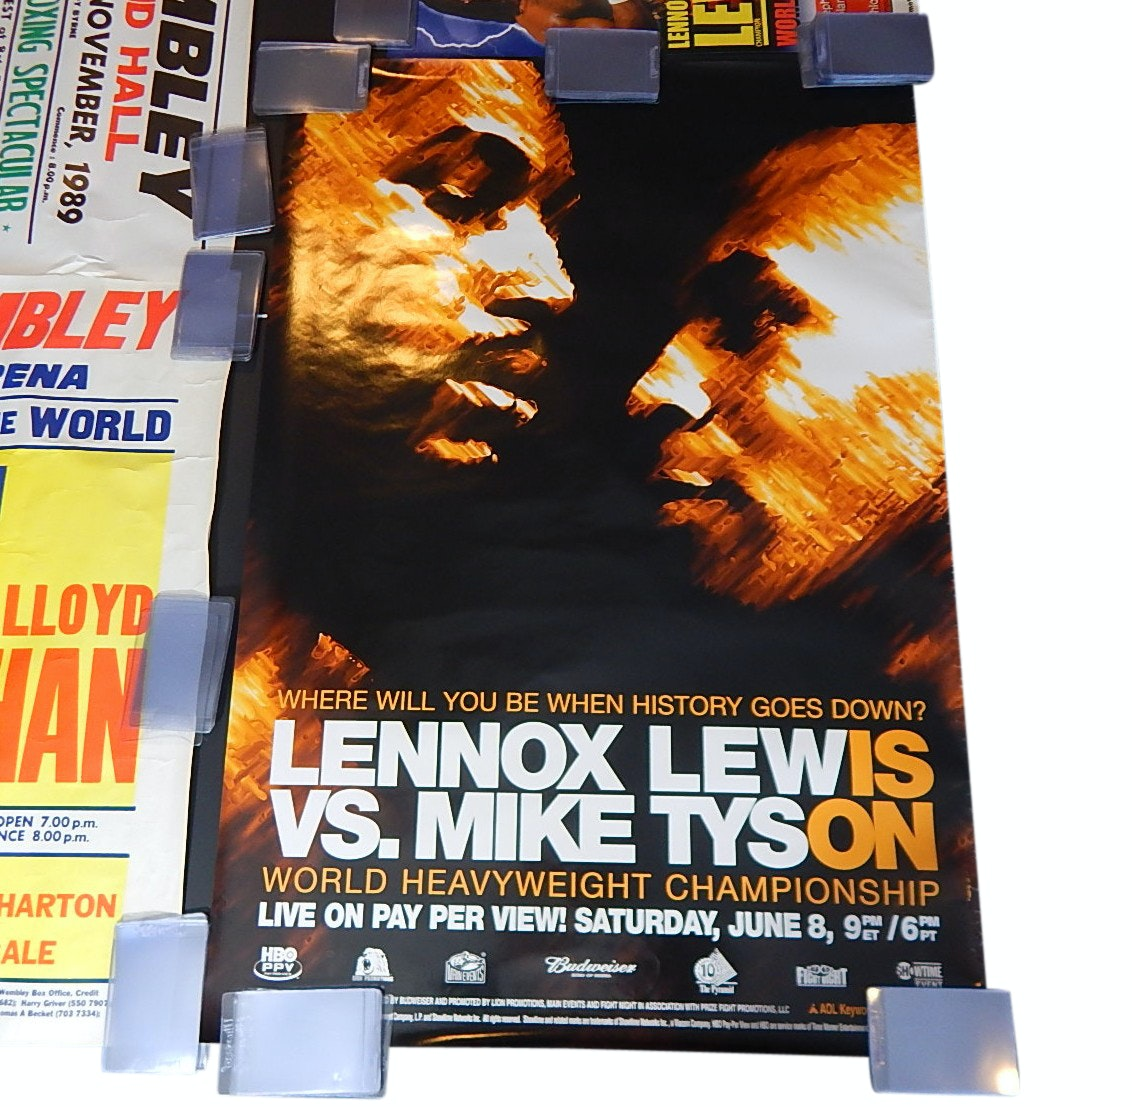 Four Vintage Boxing Fight Posters with Lewis vs. Tyson, Breland, Honeychan